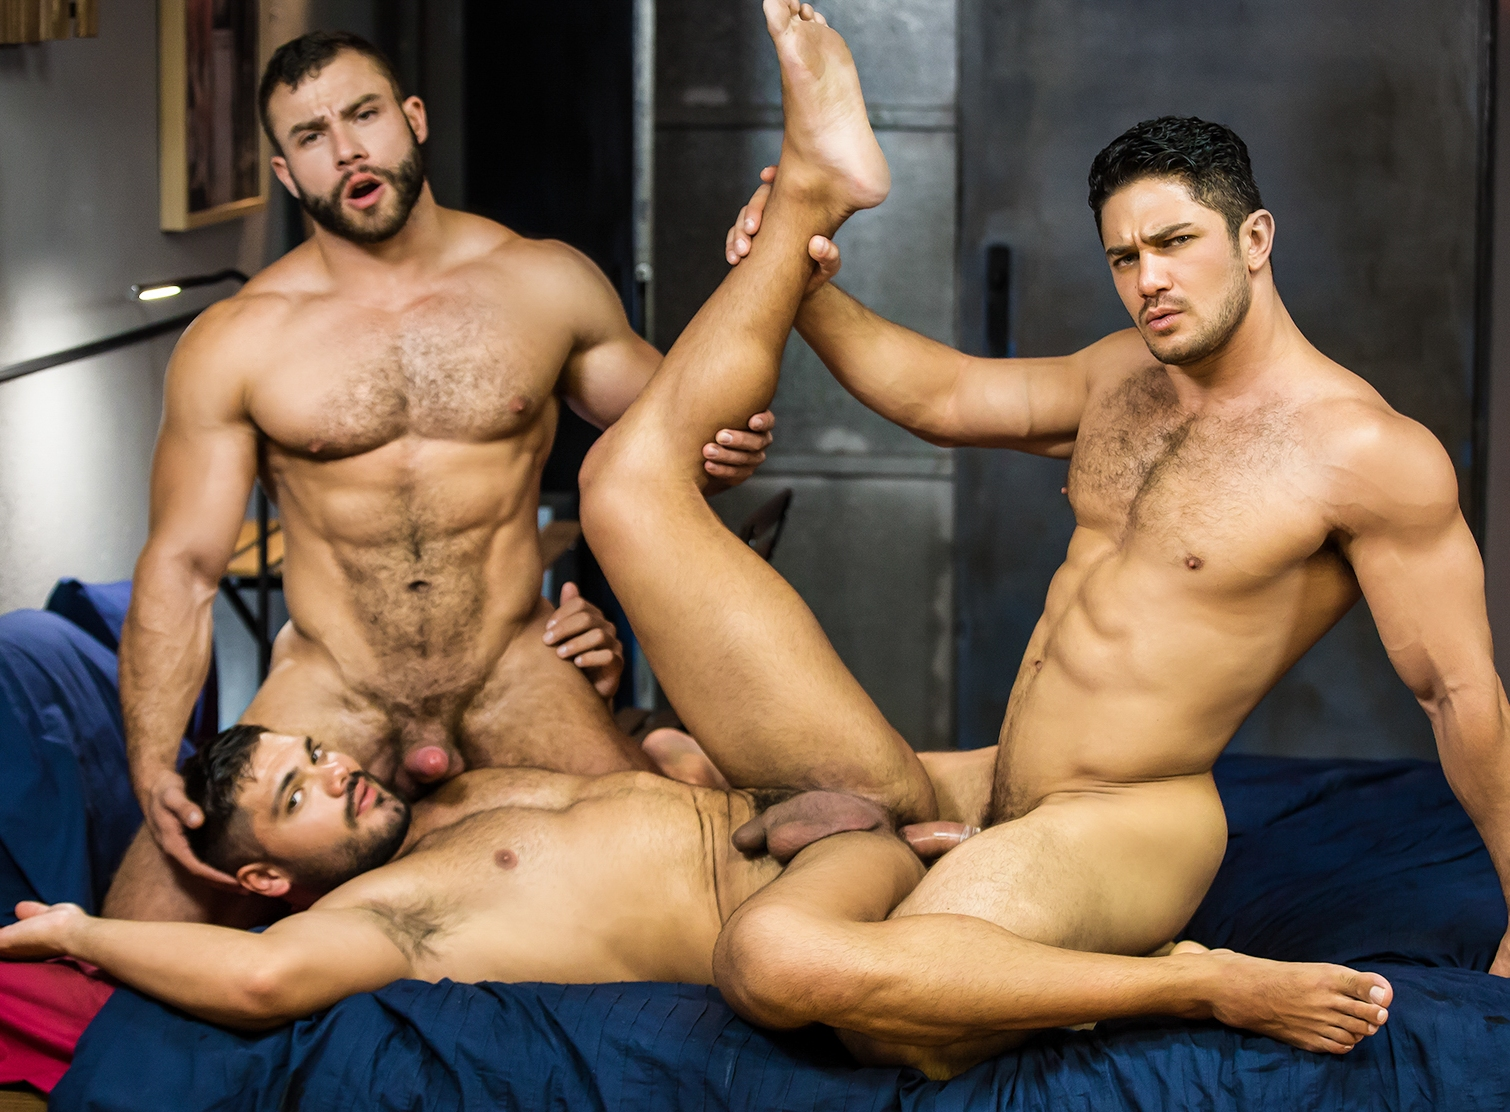 Gay muscle porn threesome